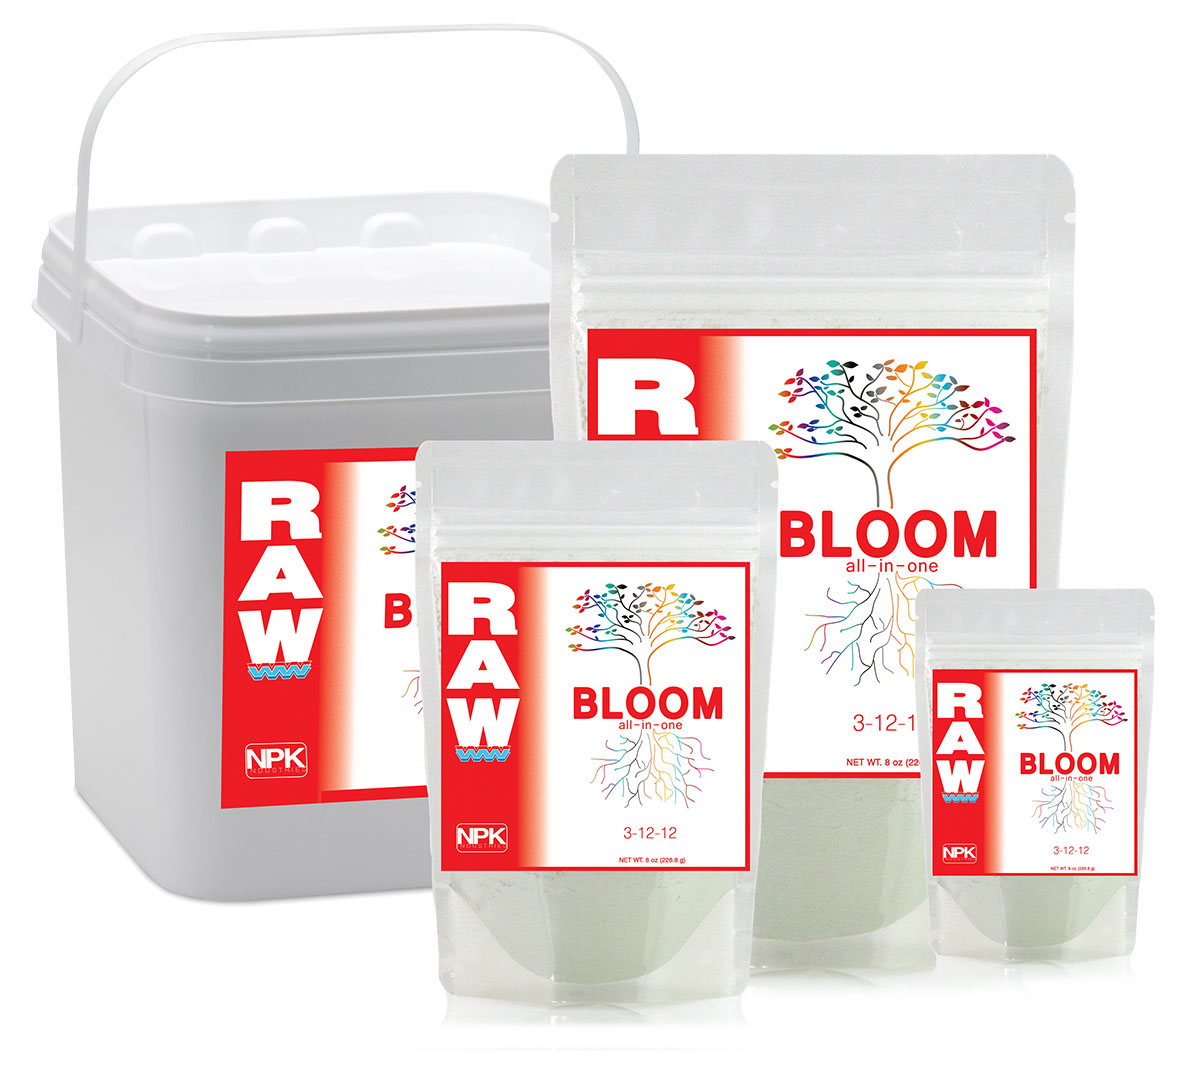 NPK RAW BLOOM 10 LBS